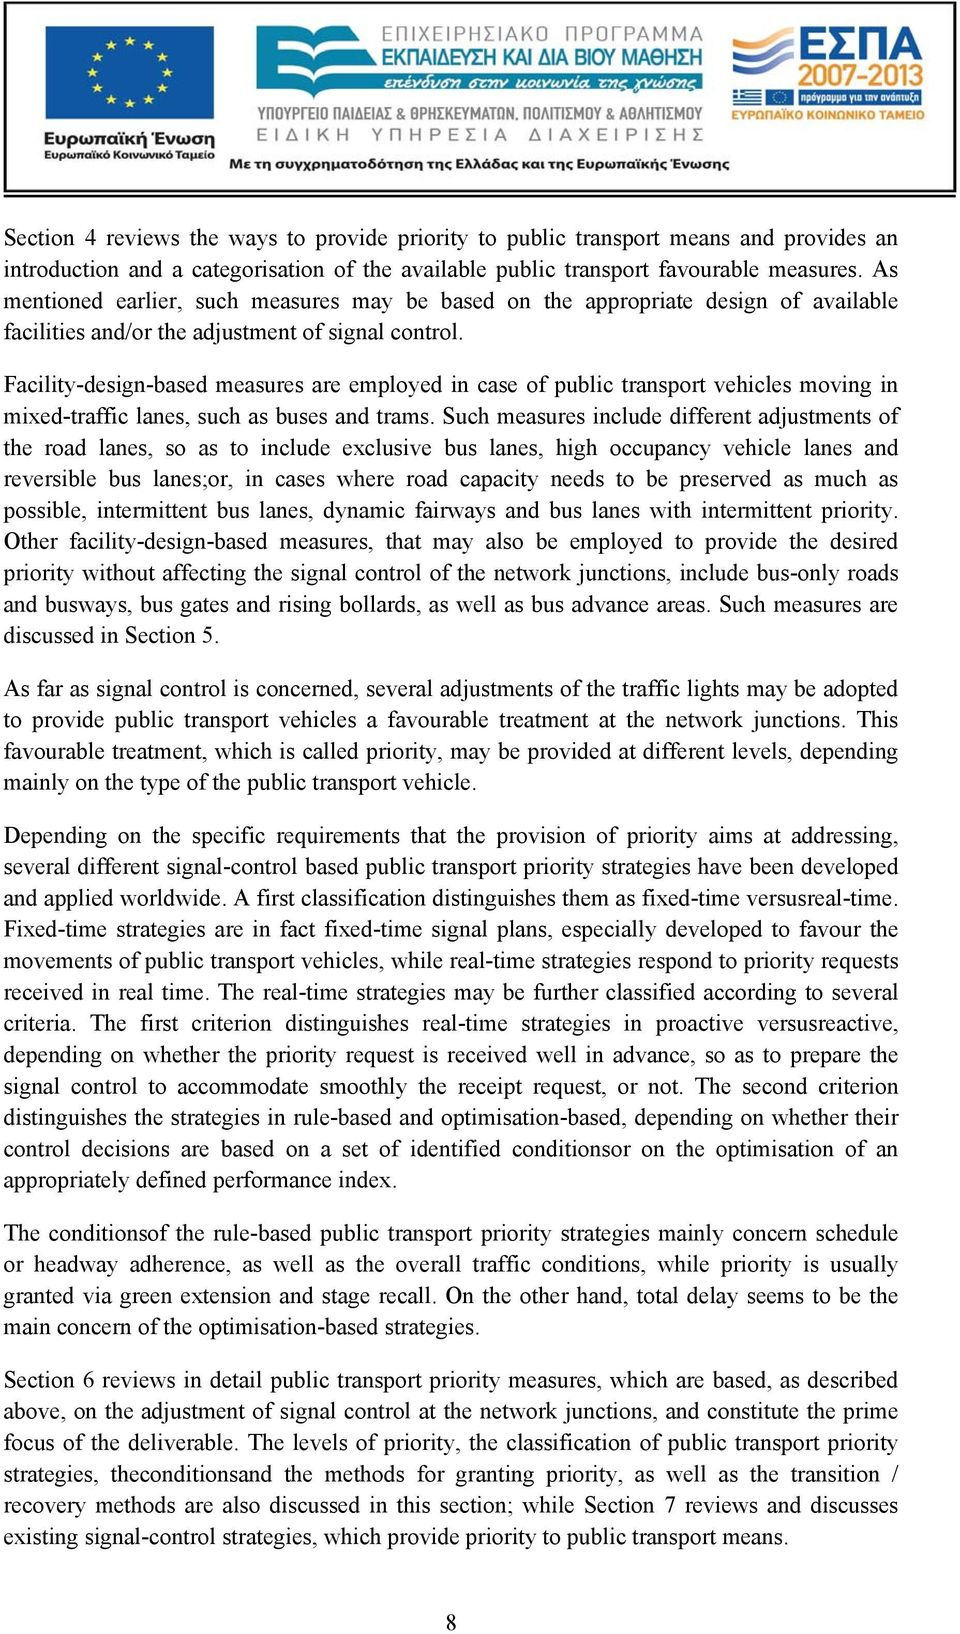 Facility-design-based measures are employed in case of public transport vehicles moving in mixed-traffic lanes, such as buses and trams.